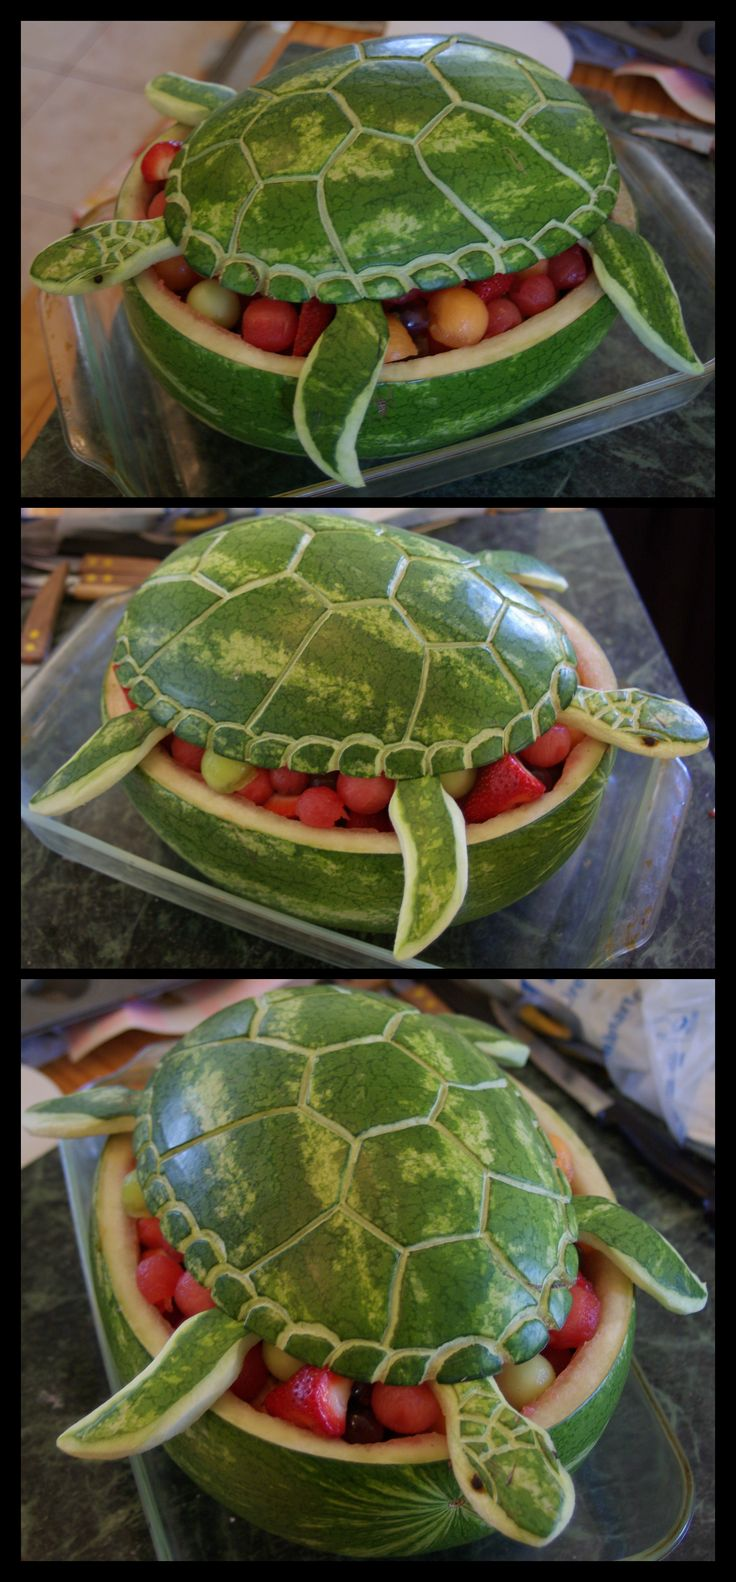 This Would Be So Cute On Any Summer Picnic Table Filled With A Yummy Fruit Salad (Melon Balls Of Cantaloupe, Honeydew, And Of Course, Watermelon, Sliced Strawberries, Grapes & Of Course Kiwi)…...